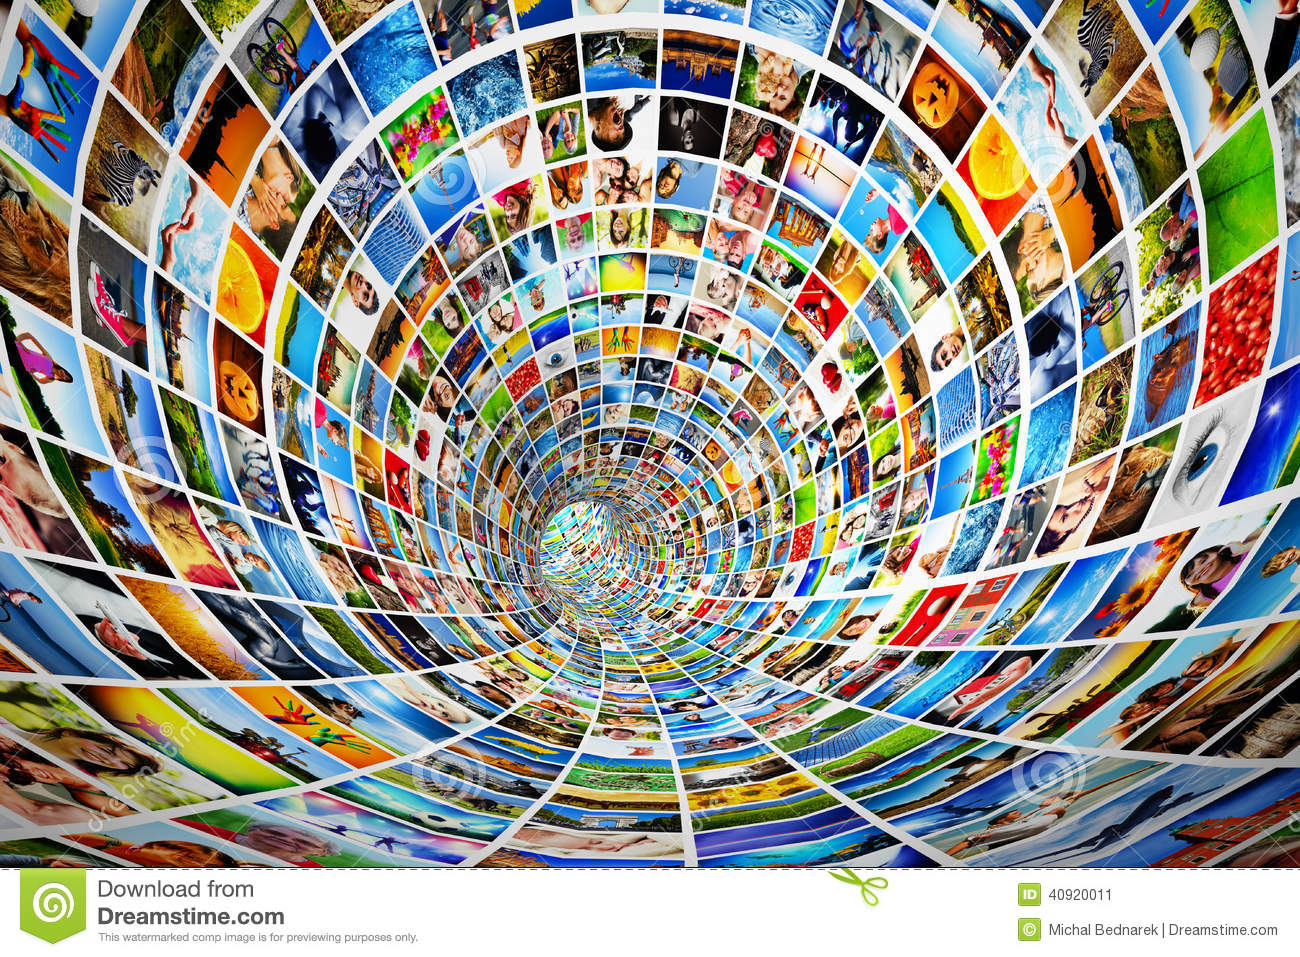 Tunnel of media, images, photographs